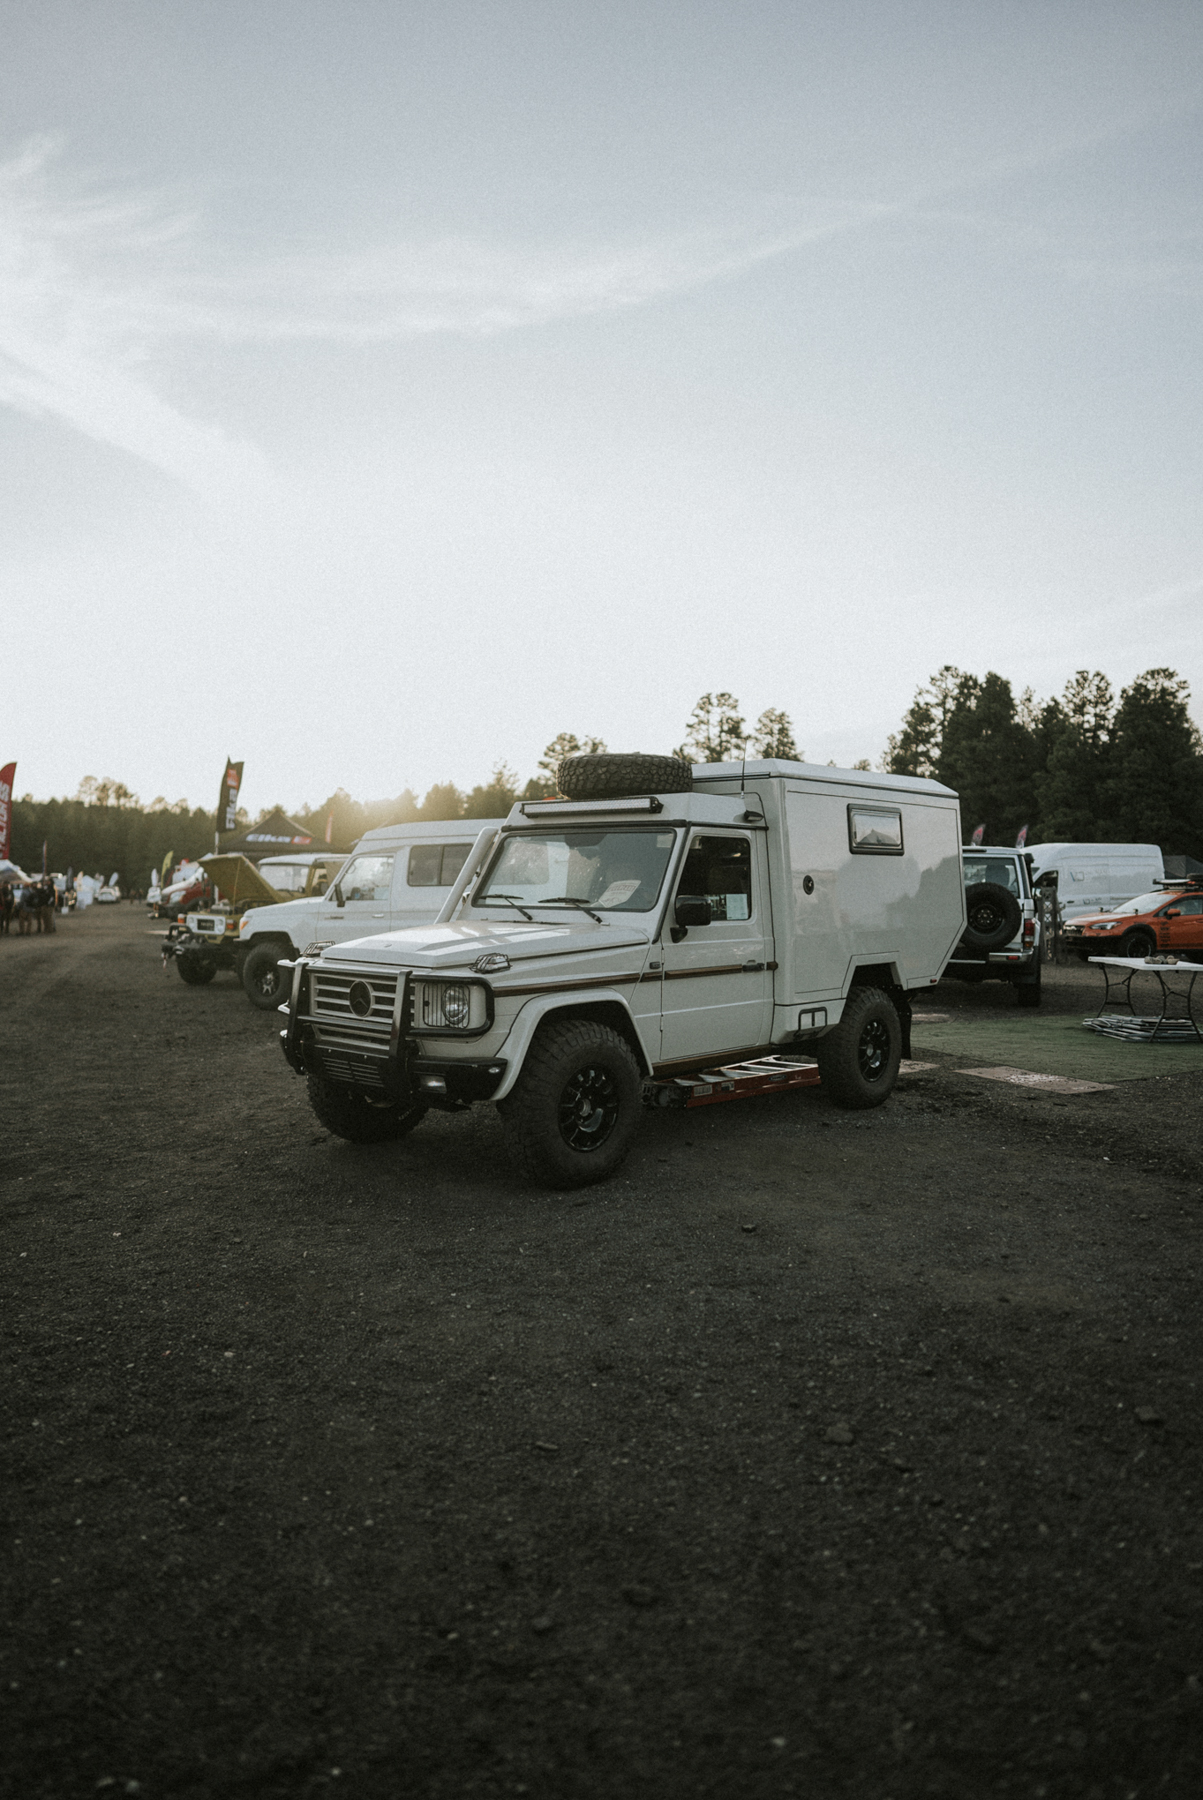 overland_expo_roaming_lost-82.jpg